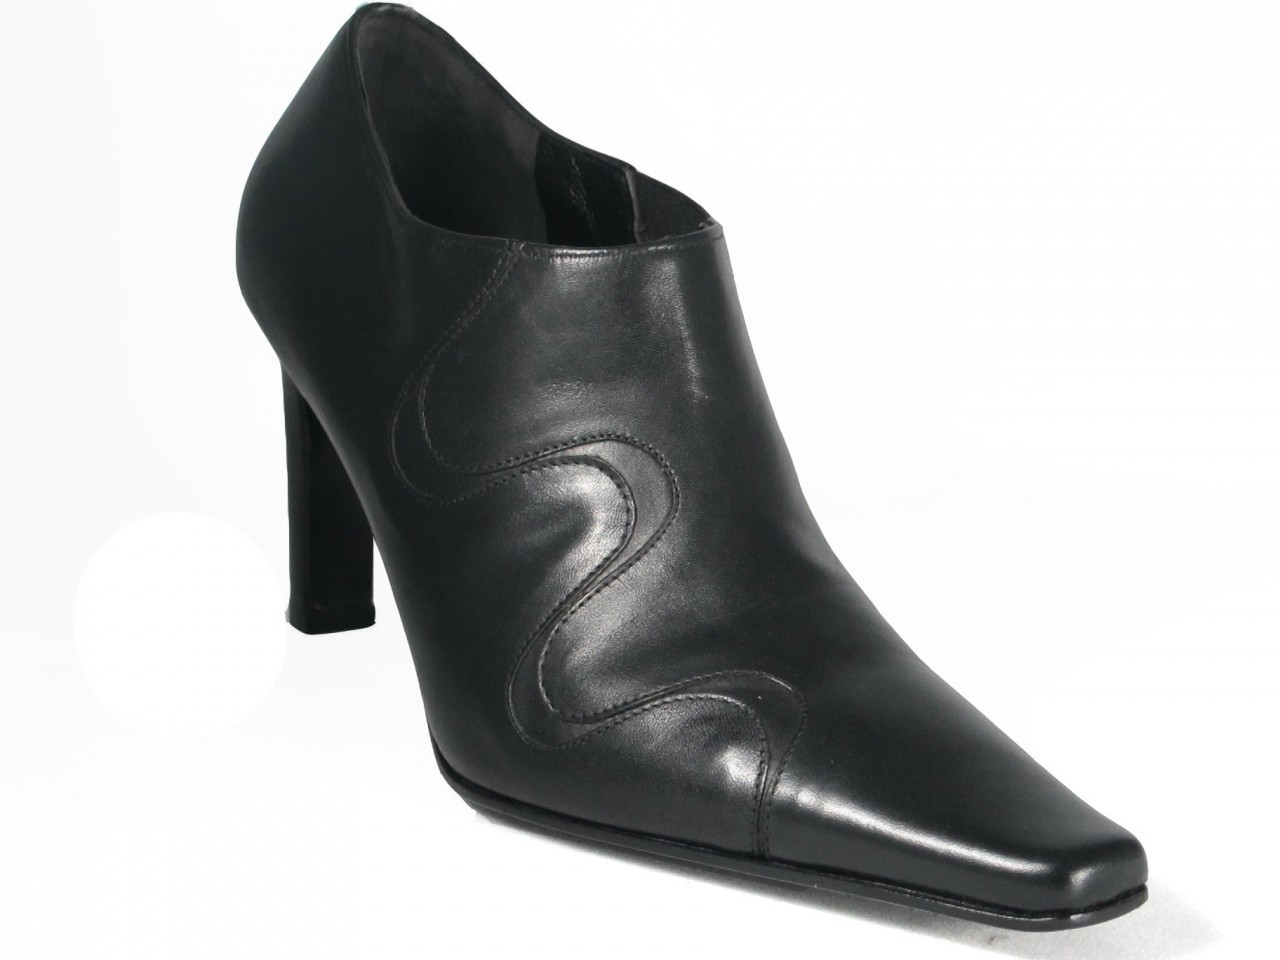 Fantastic These Showstopping Stiletto Heel Boots Channels Giuseppe Zanotti Designs